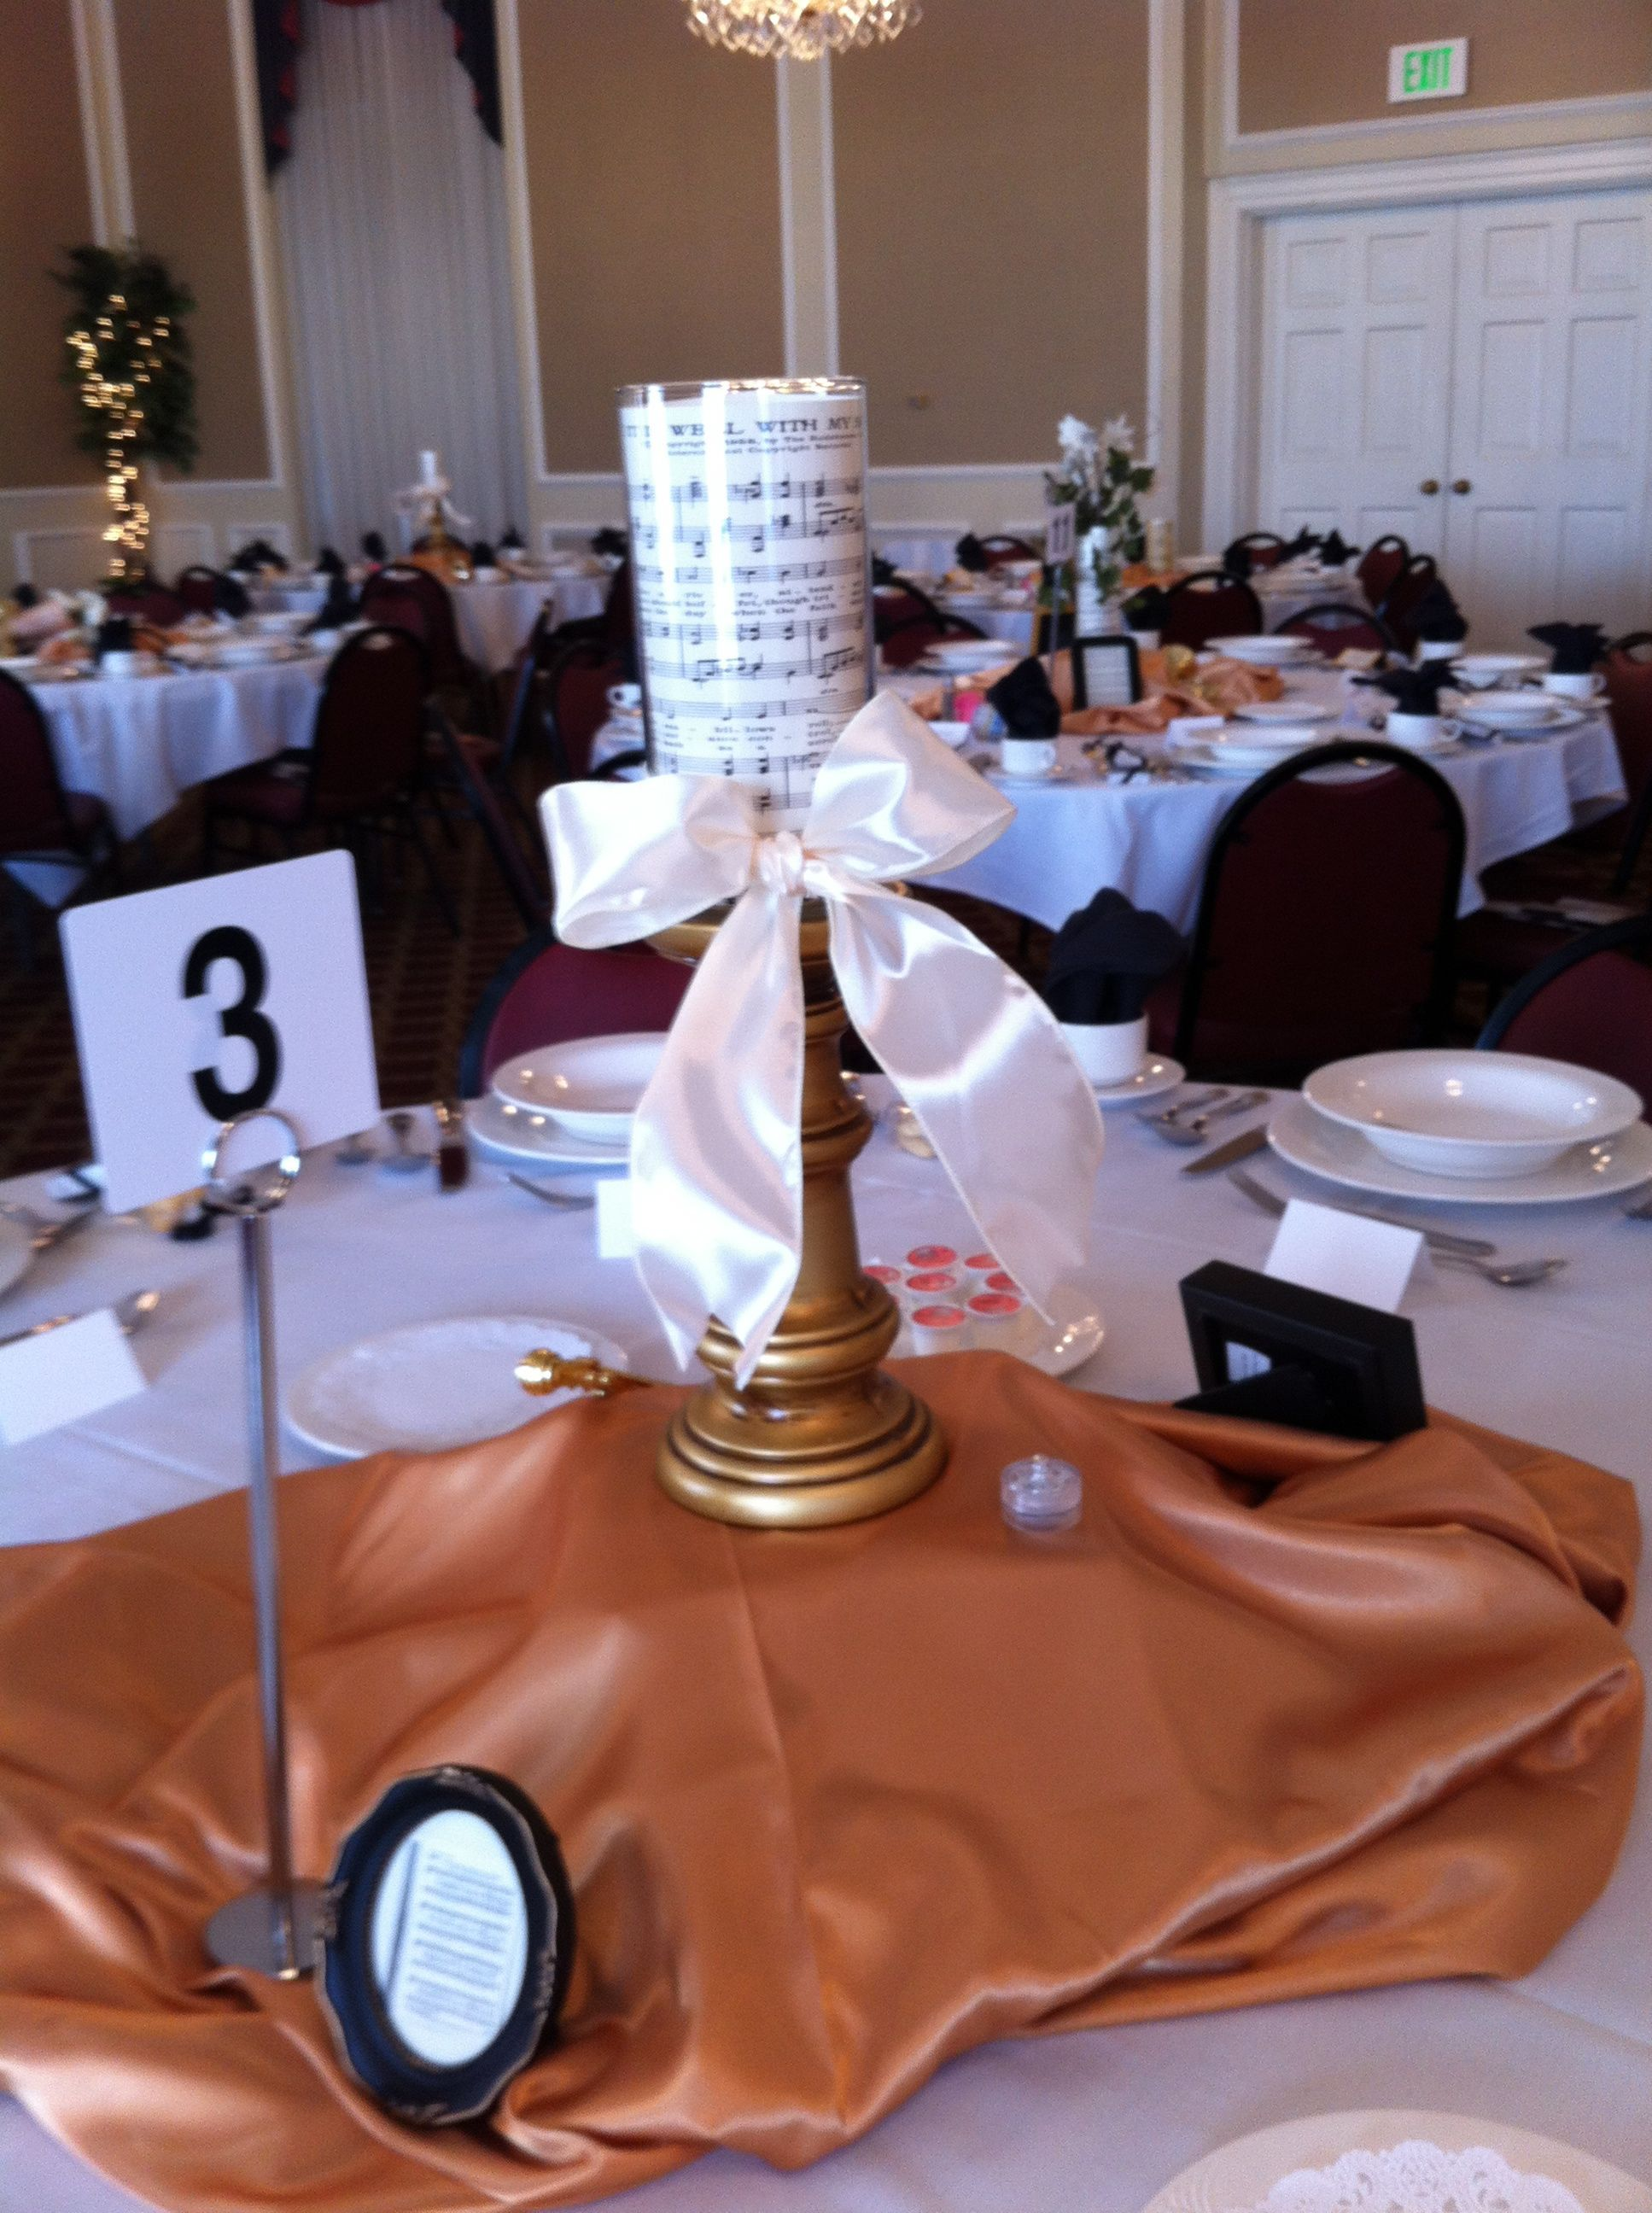 Musicthemed tablescape at the fall 2012 Women's Auxiliary